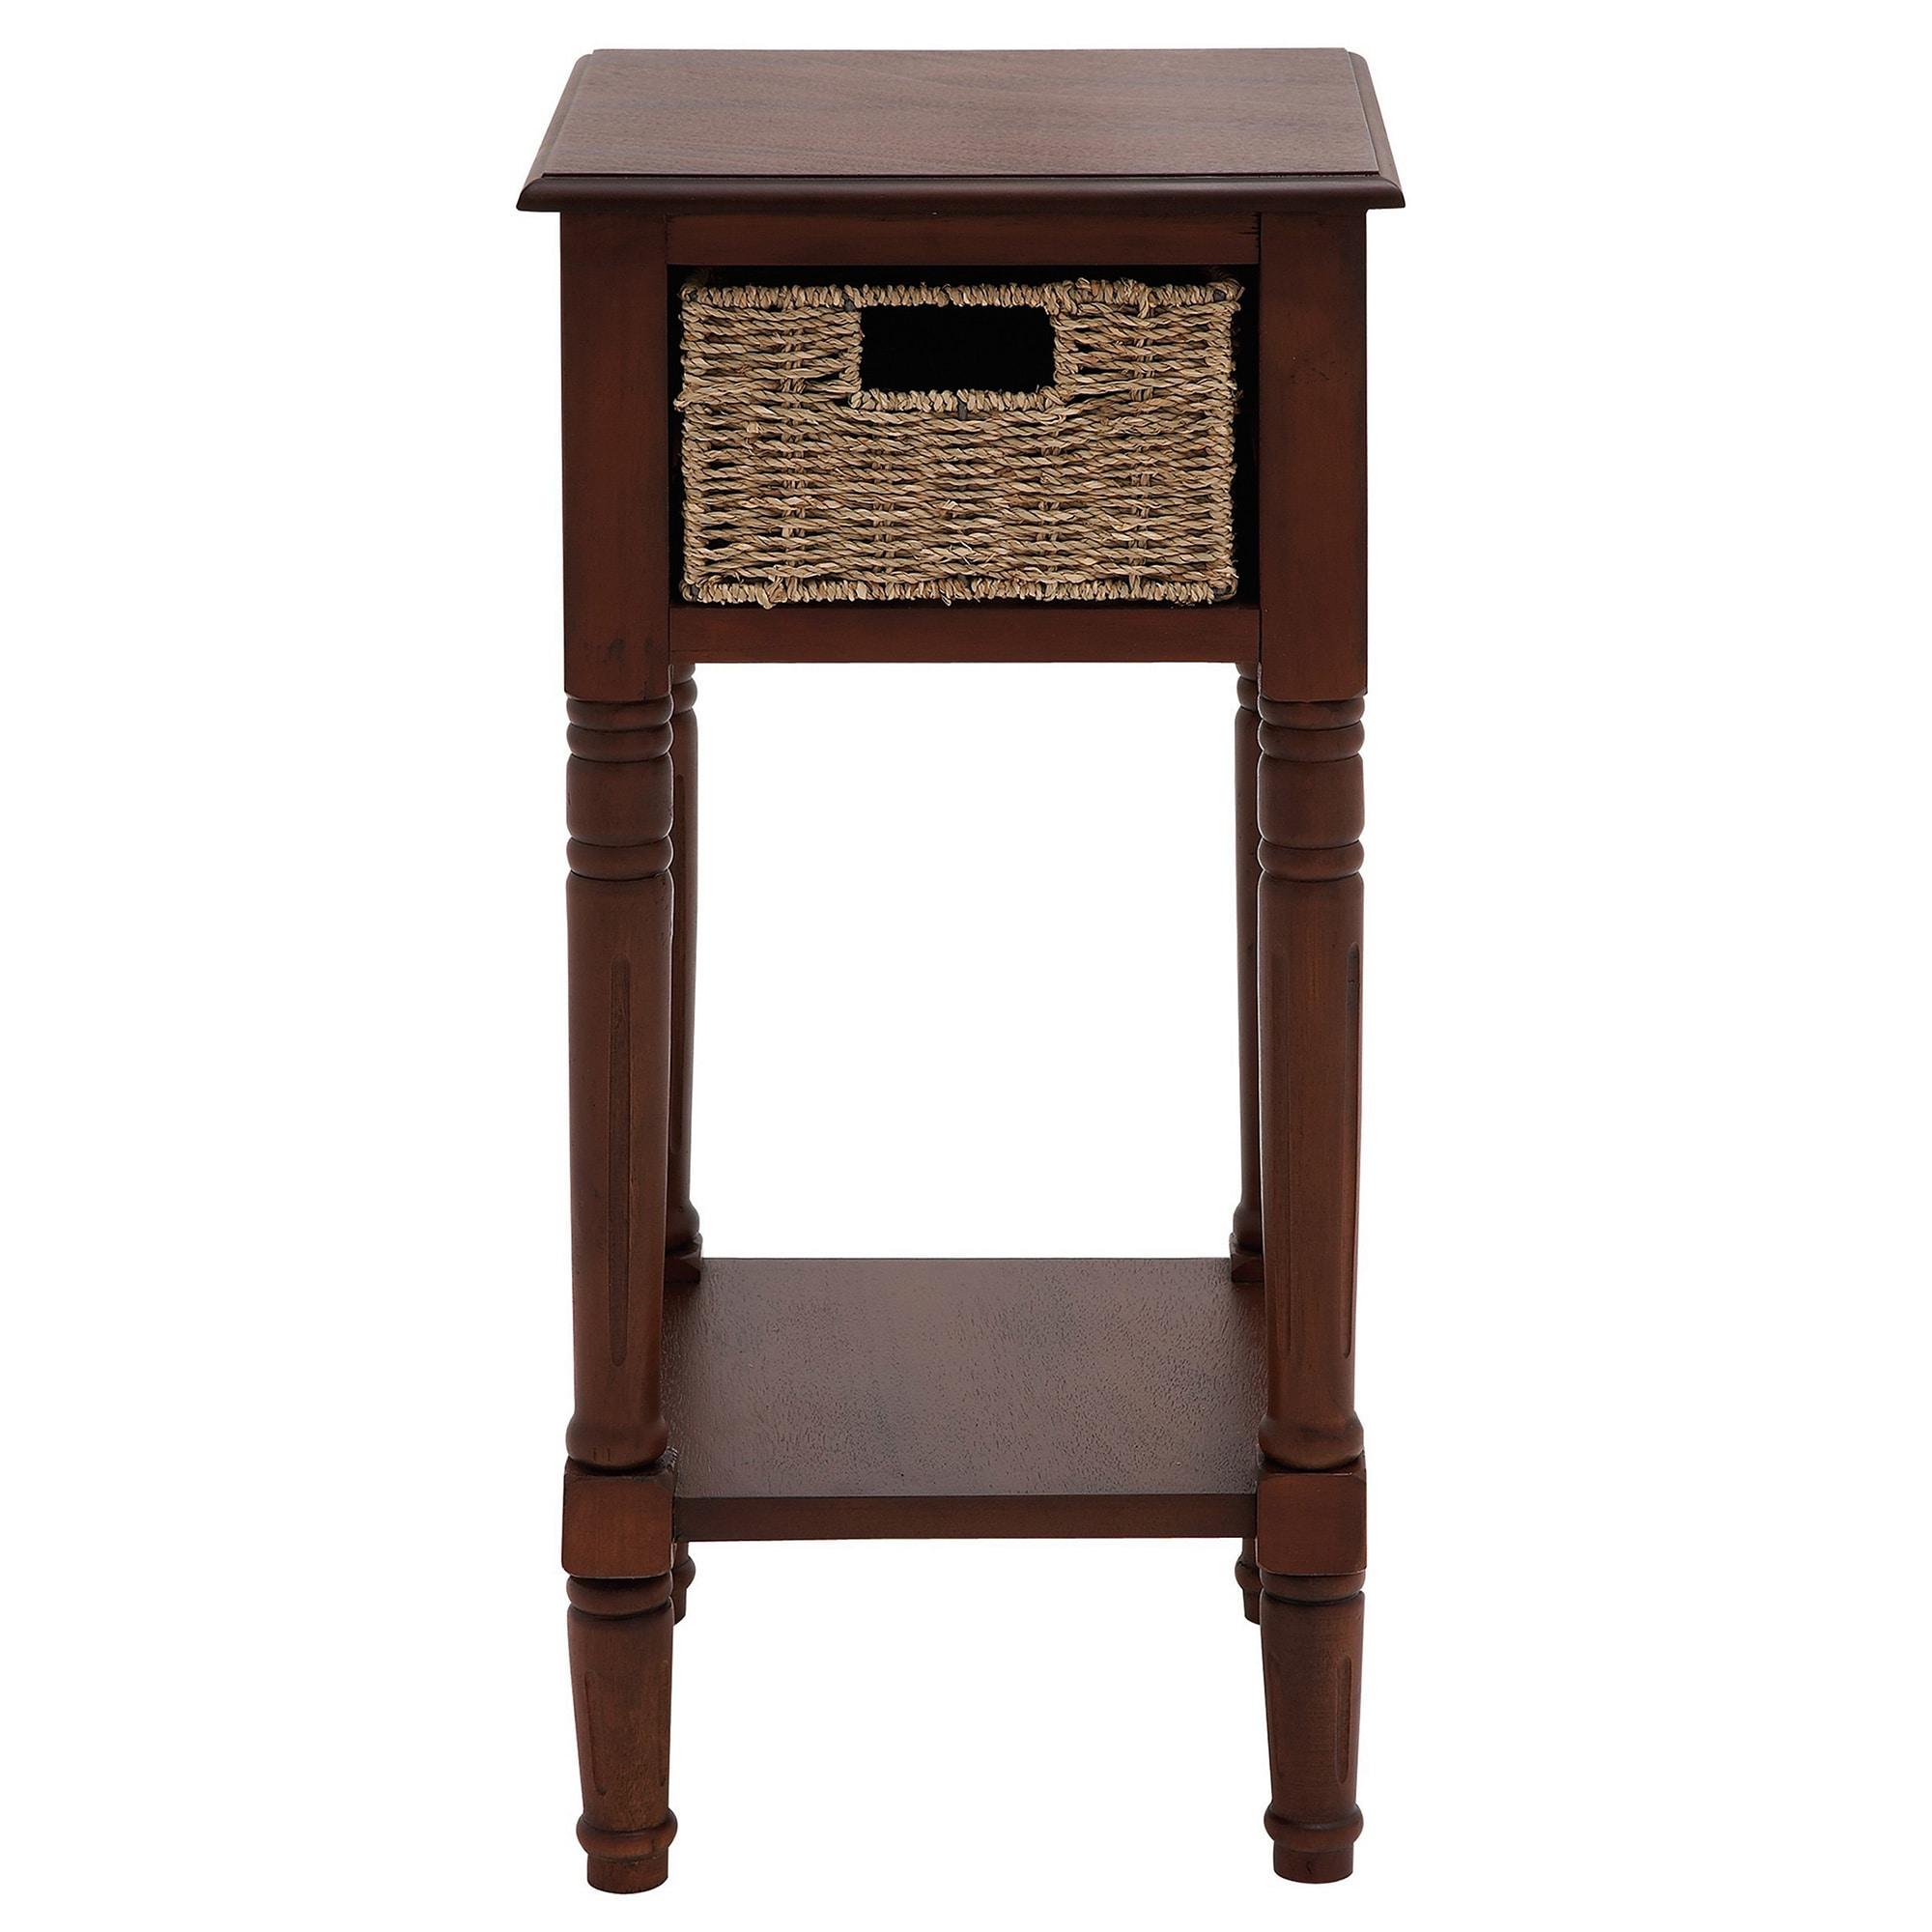 Portmand handcrafted wood burlap basket end accent table